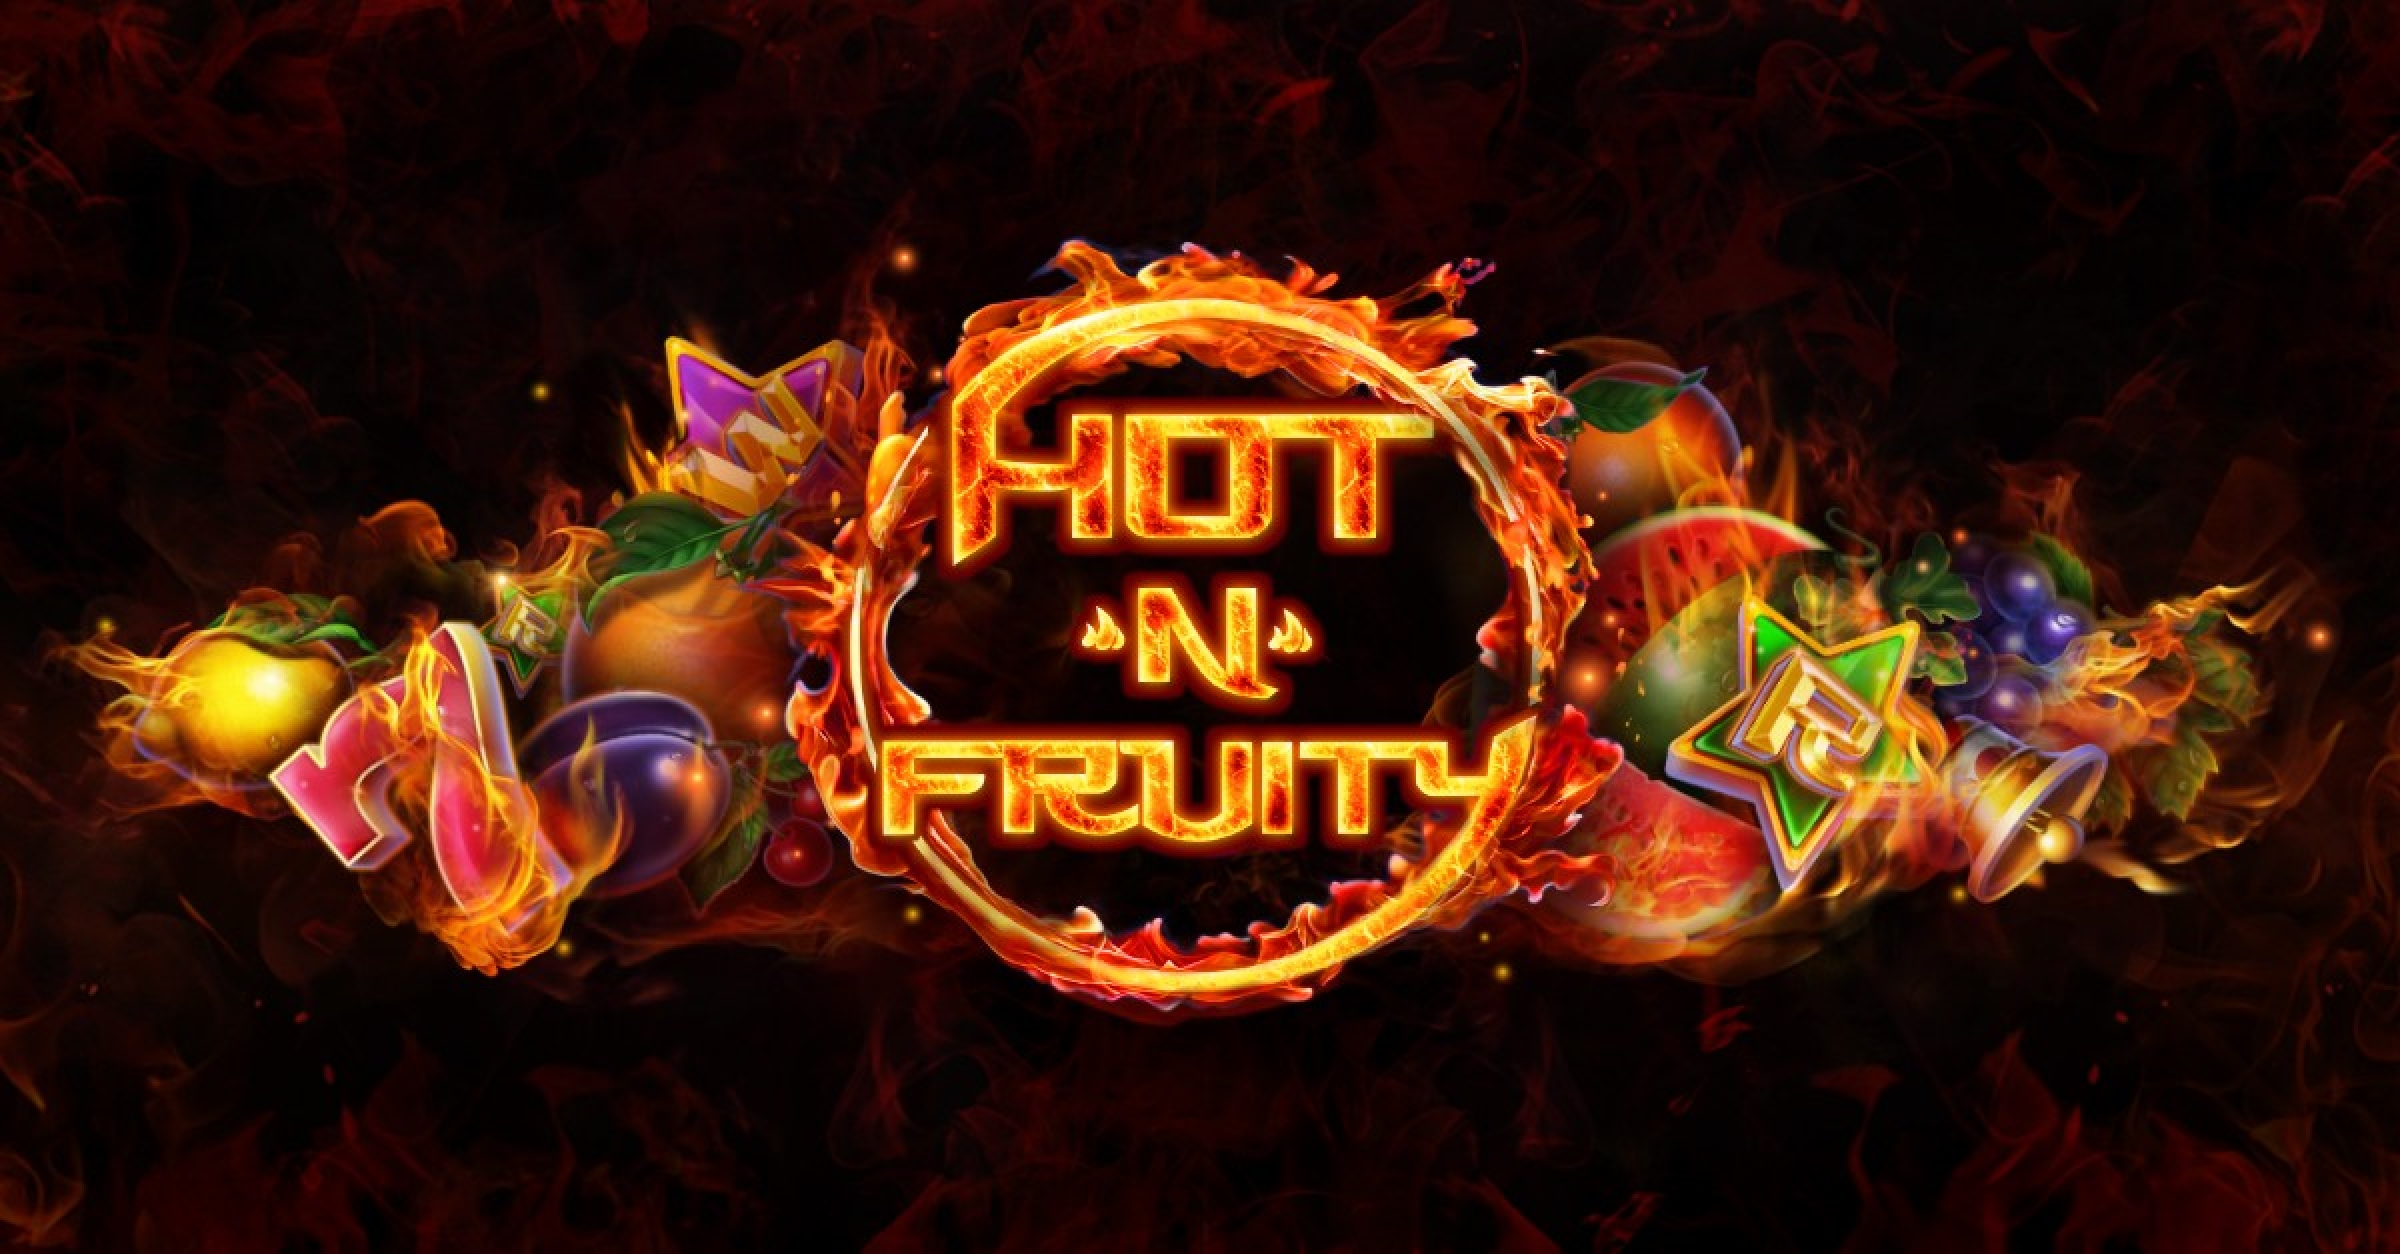 The Hot'n'Fruity Online Slot Demo Game by Tom Horn Gaming